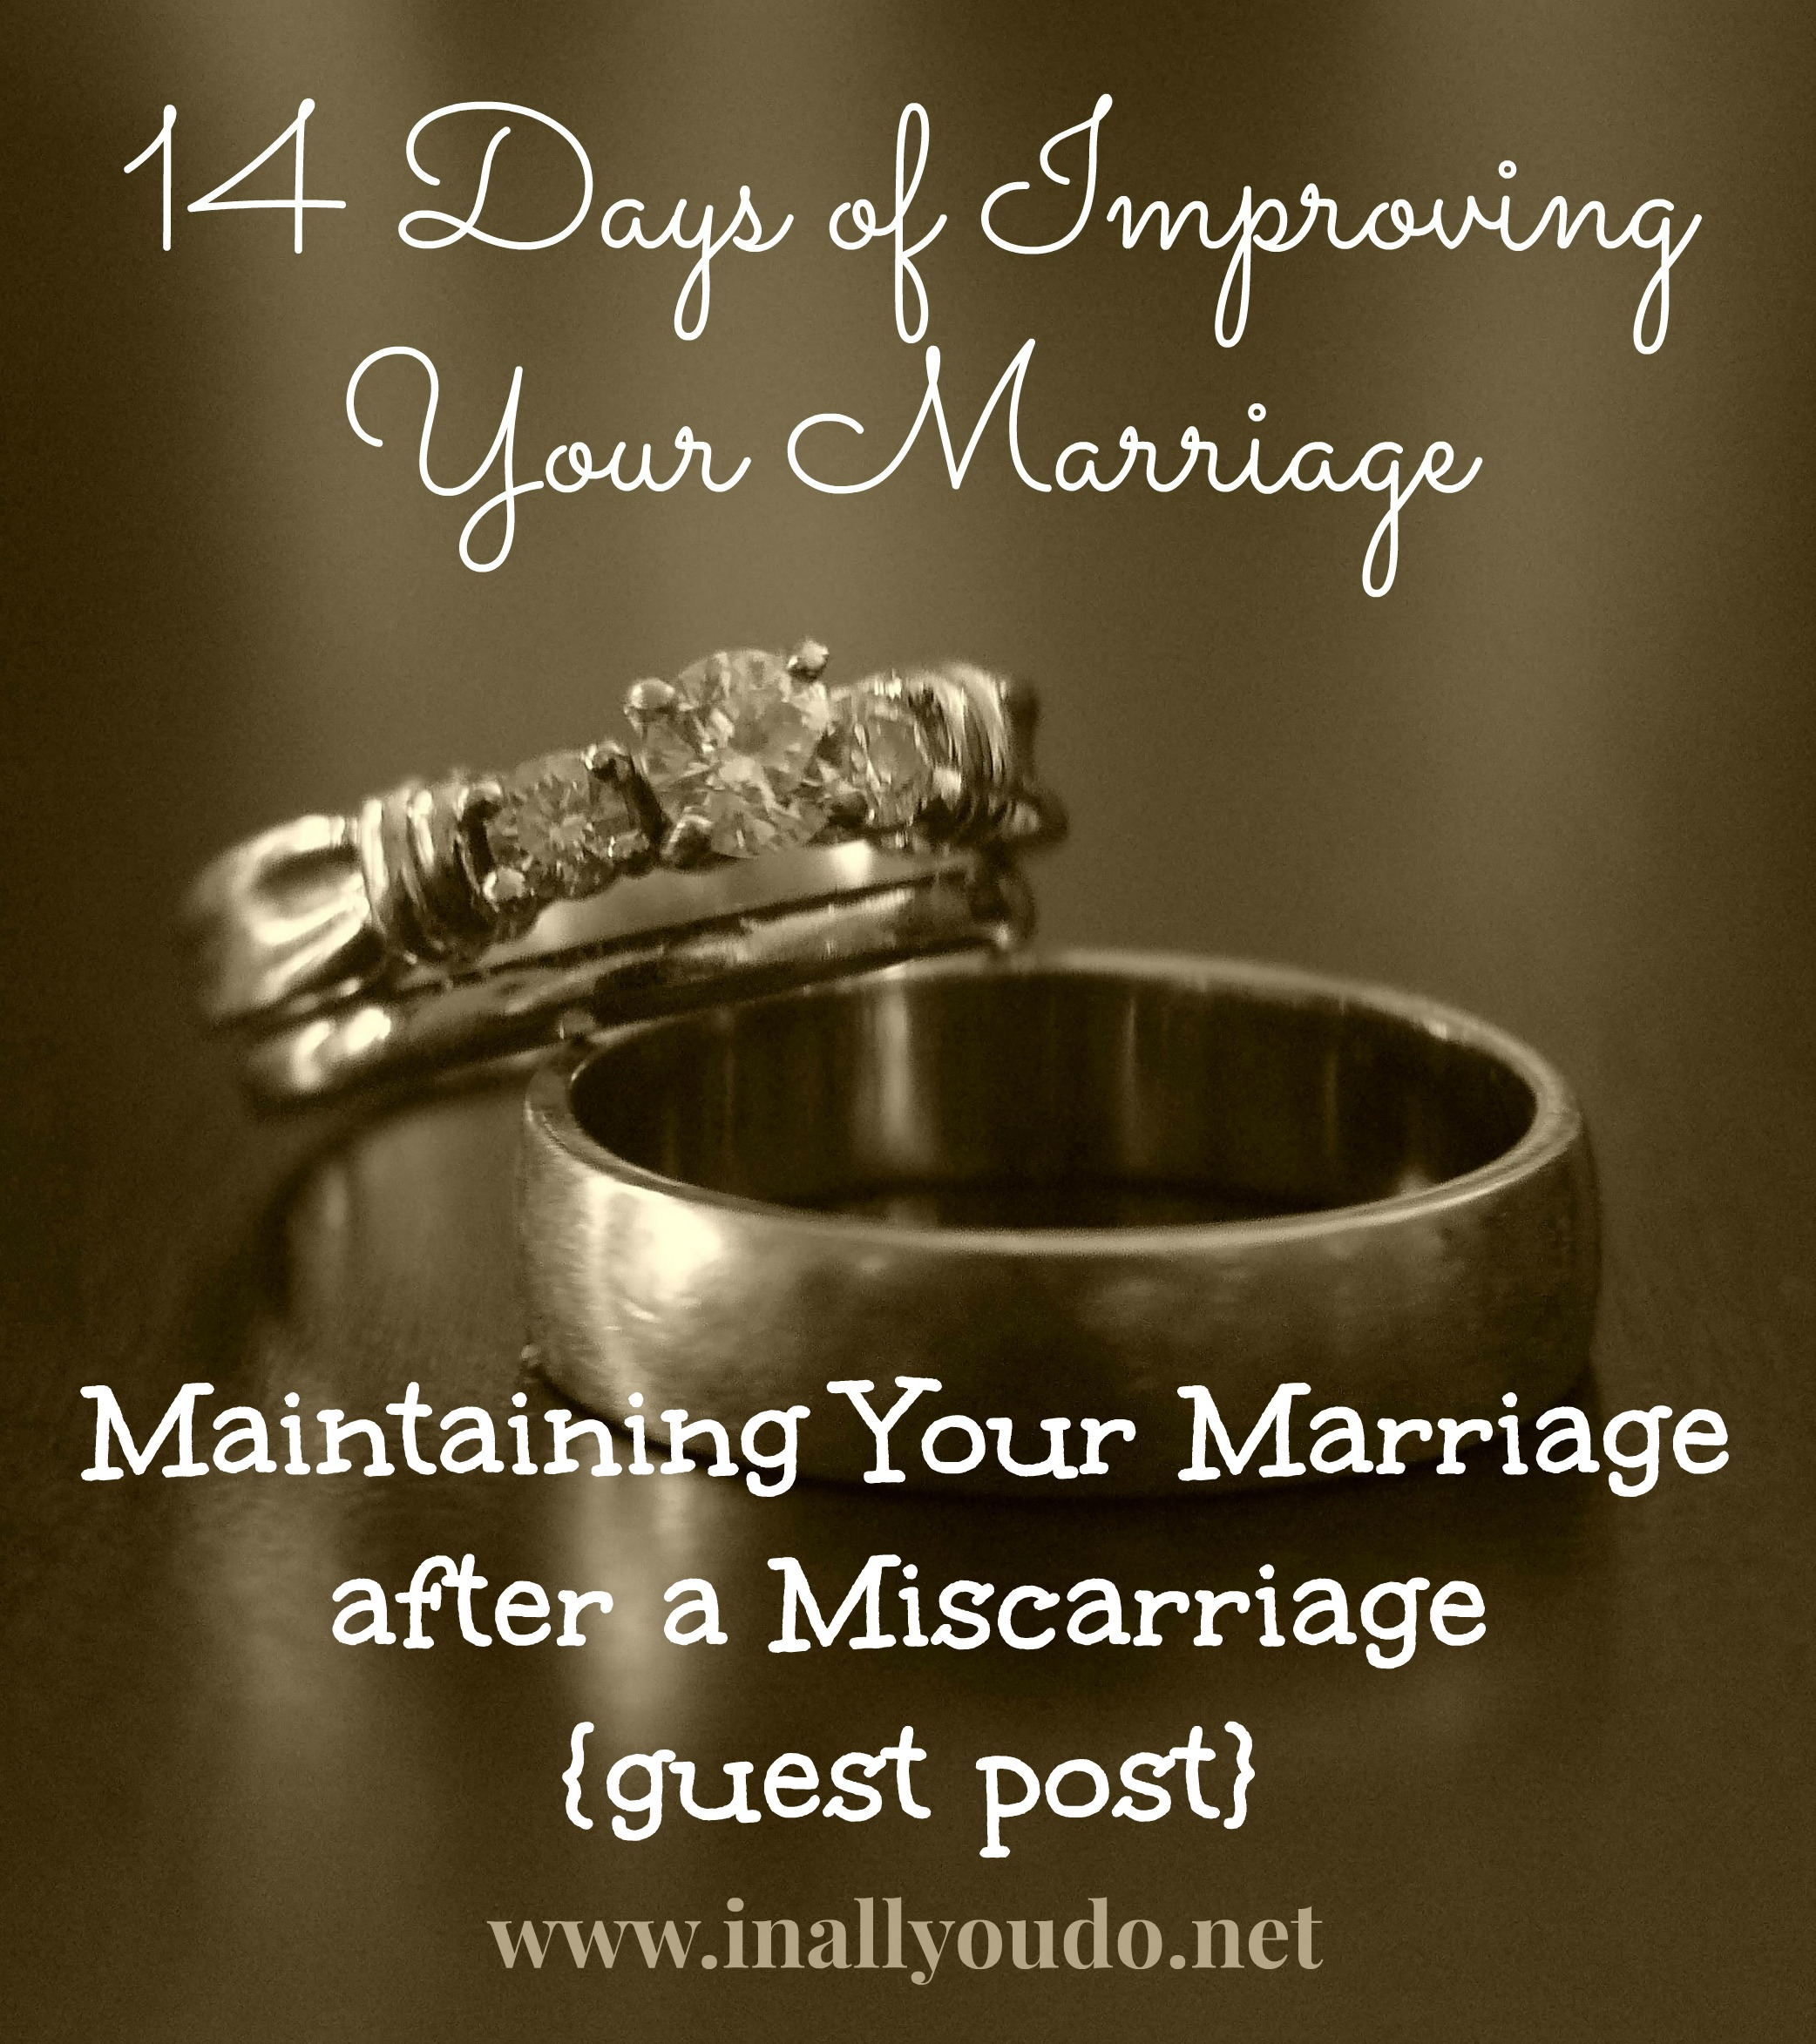 Day 11 ~ Maintaining Your Marriage after a Miscarriage {guest post}